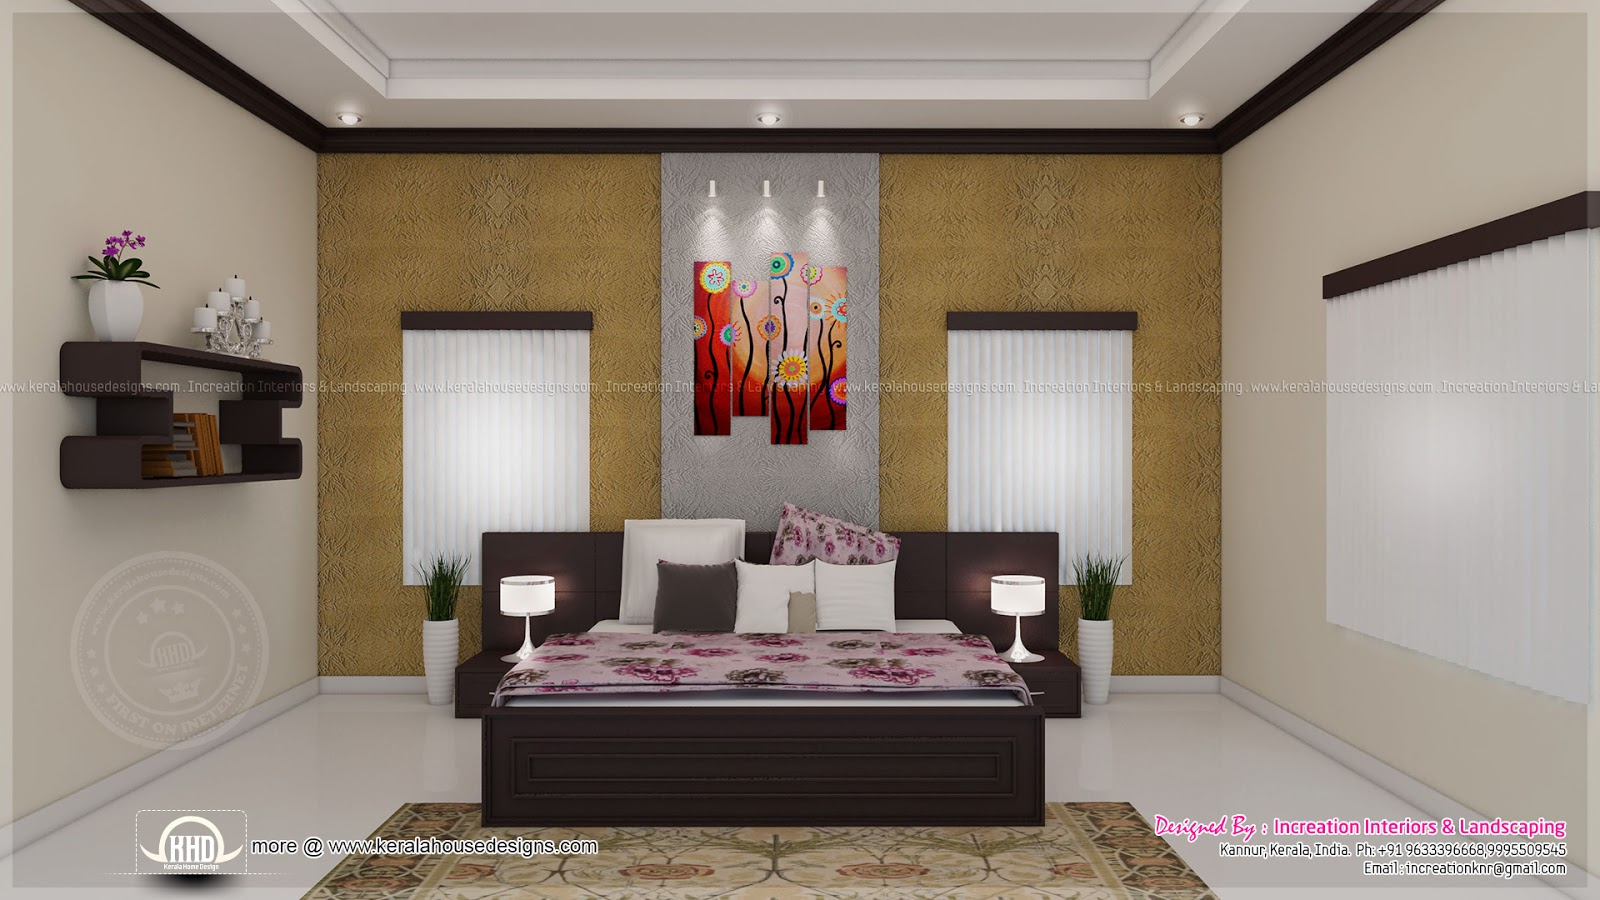 House interior ideas in 3d rendering kerala home design for Interior design decorating styles